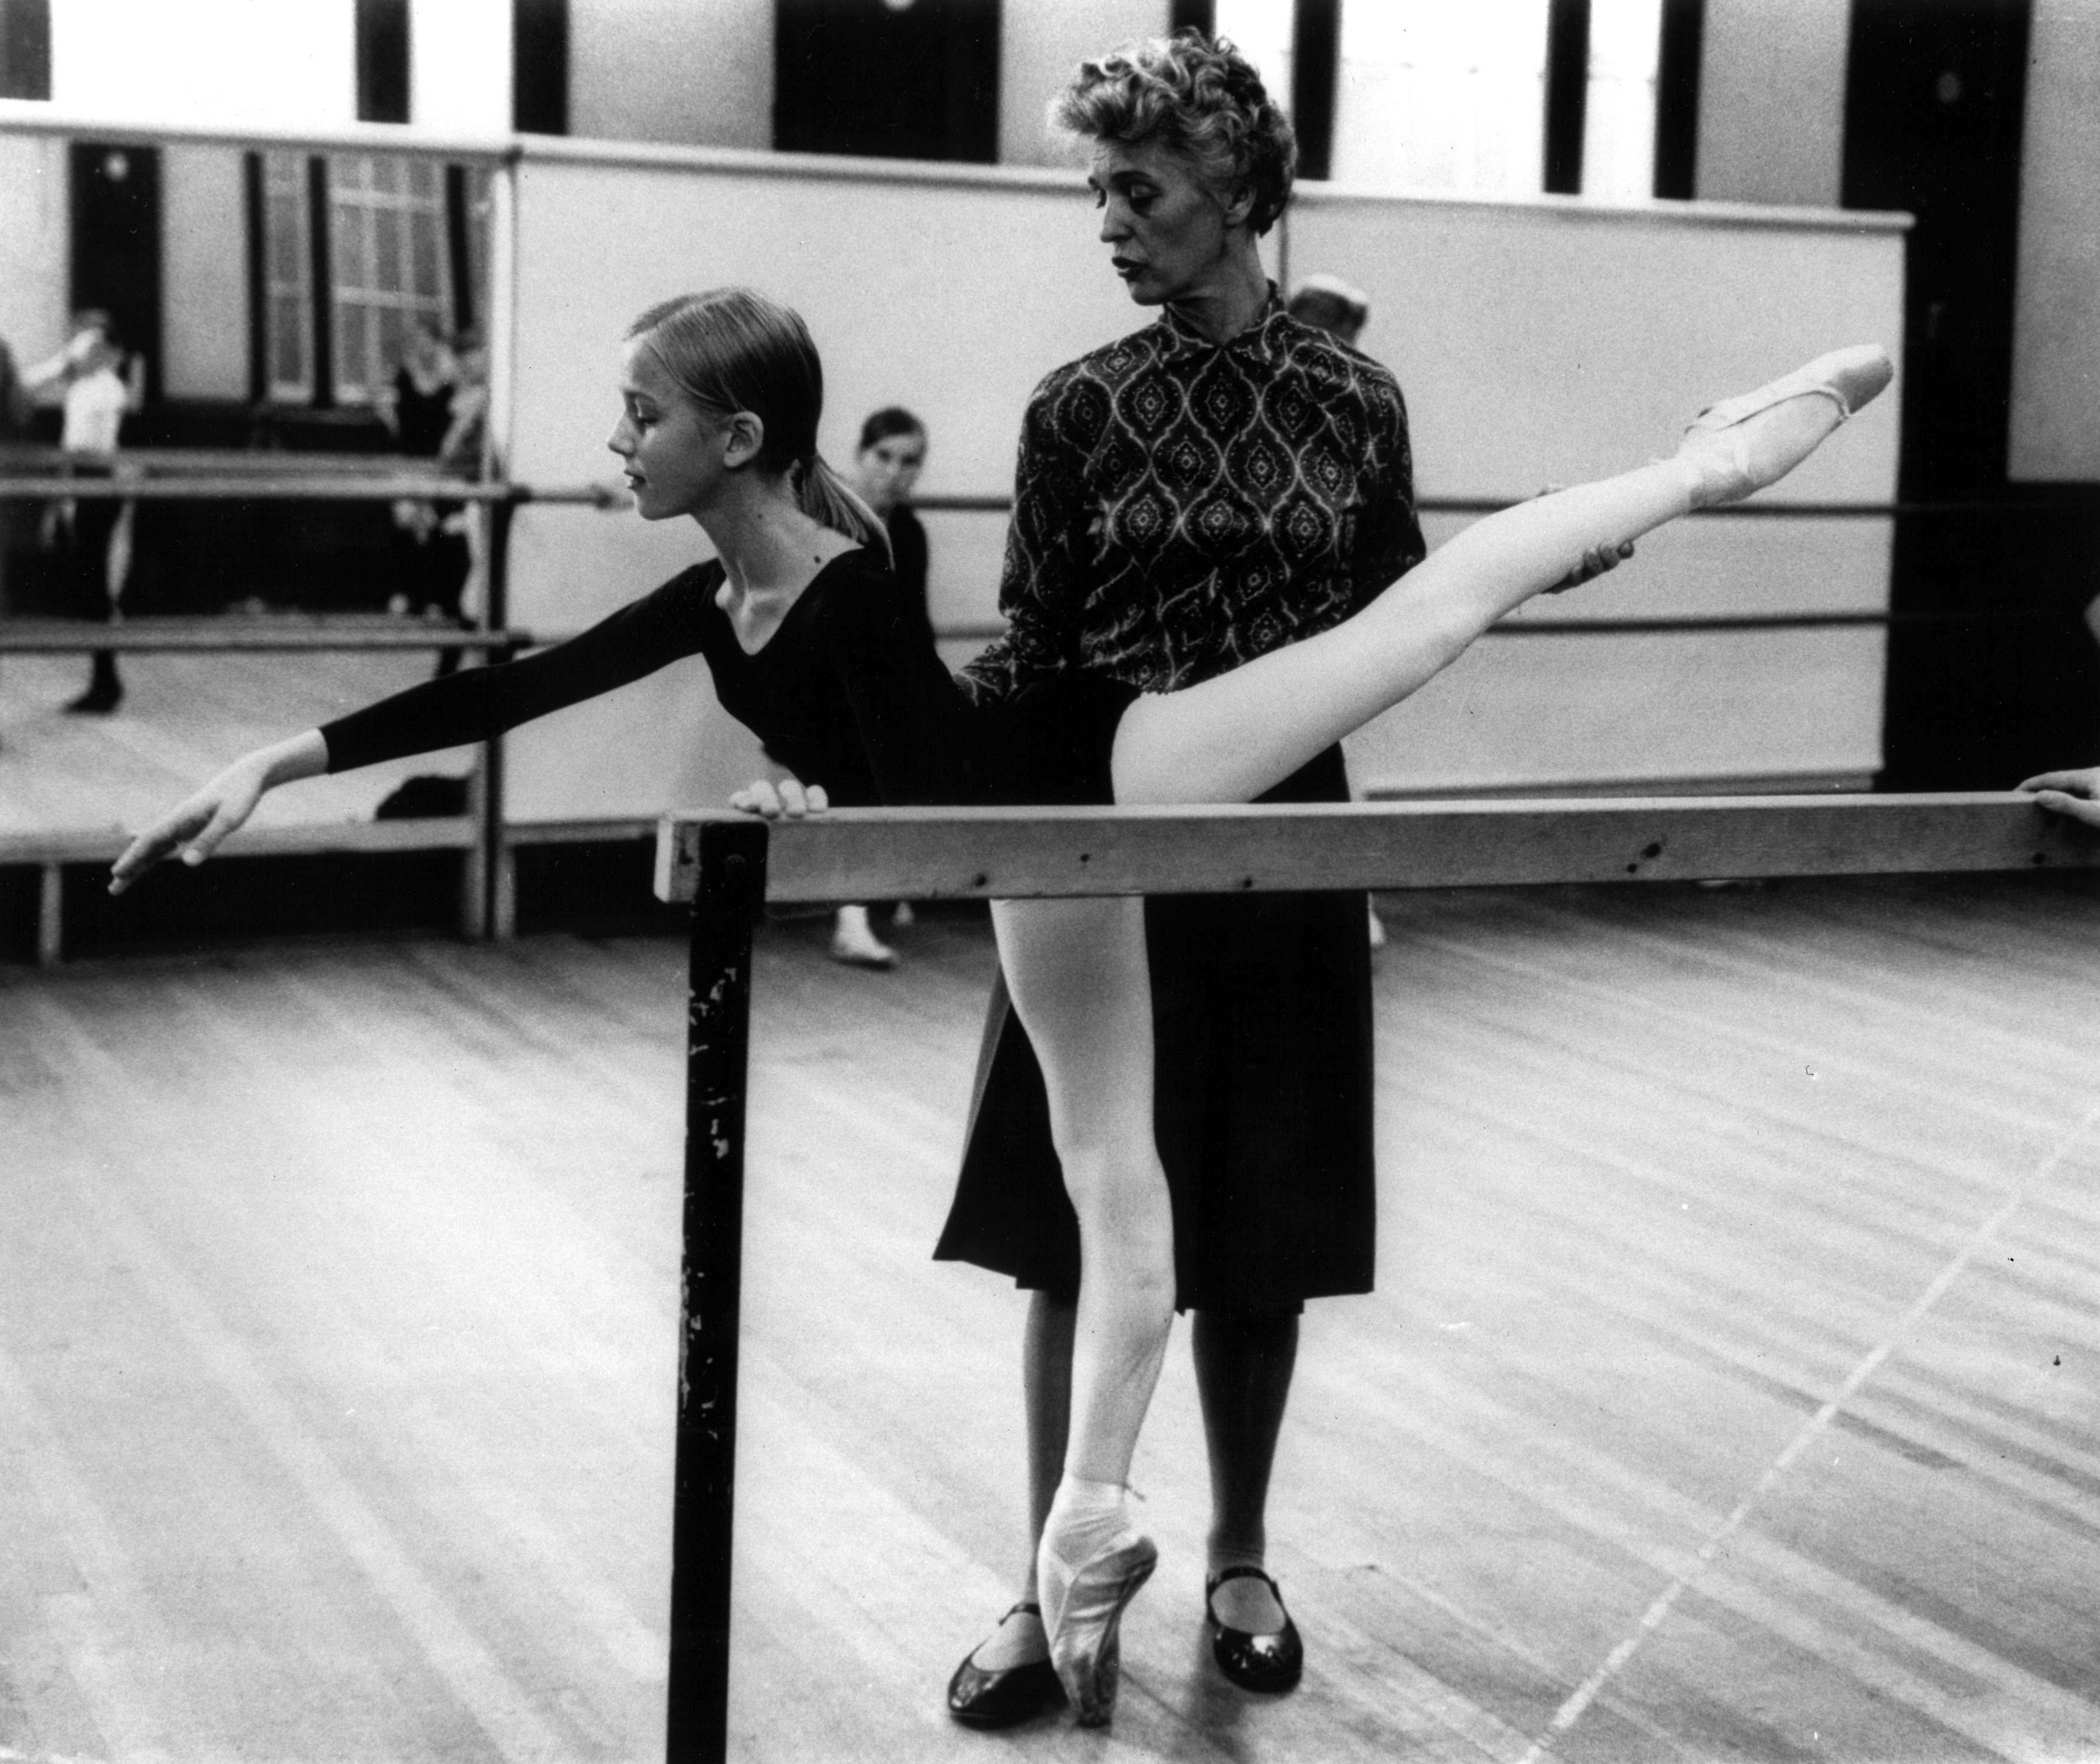 Betty Oliphant and Cecchetti   As a teenager, Betty Oliphant was introduced to the Cecchetti method of ballet training, a codified system developed by master teacher, Enrico Cecchetti, primarily for the training of professional dancers. The system appealed to her because it was logical and its technical demands revealed clearly whether or not its exercises were being properly executed. Oliphant was a highly respected teacher of the system and an examiner for the Cecchetti Branch of the Imperial Society of Teachers of Dancing (ISTD) when she co-founded NBS, and so the School's original curriculum was deeply rooted in the Cecchetti method.